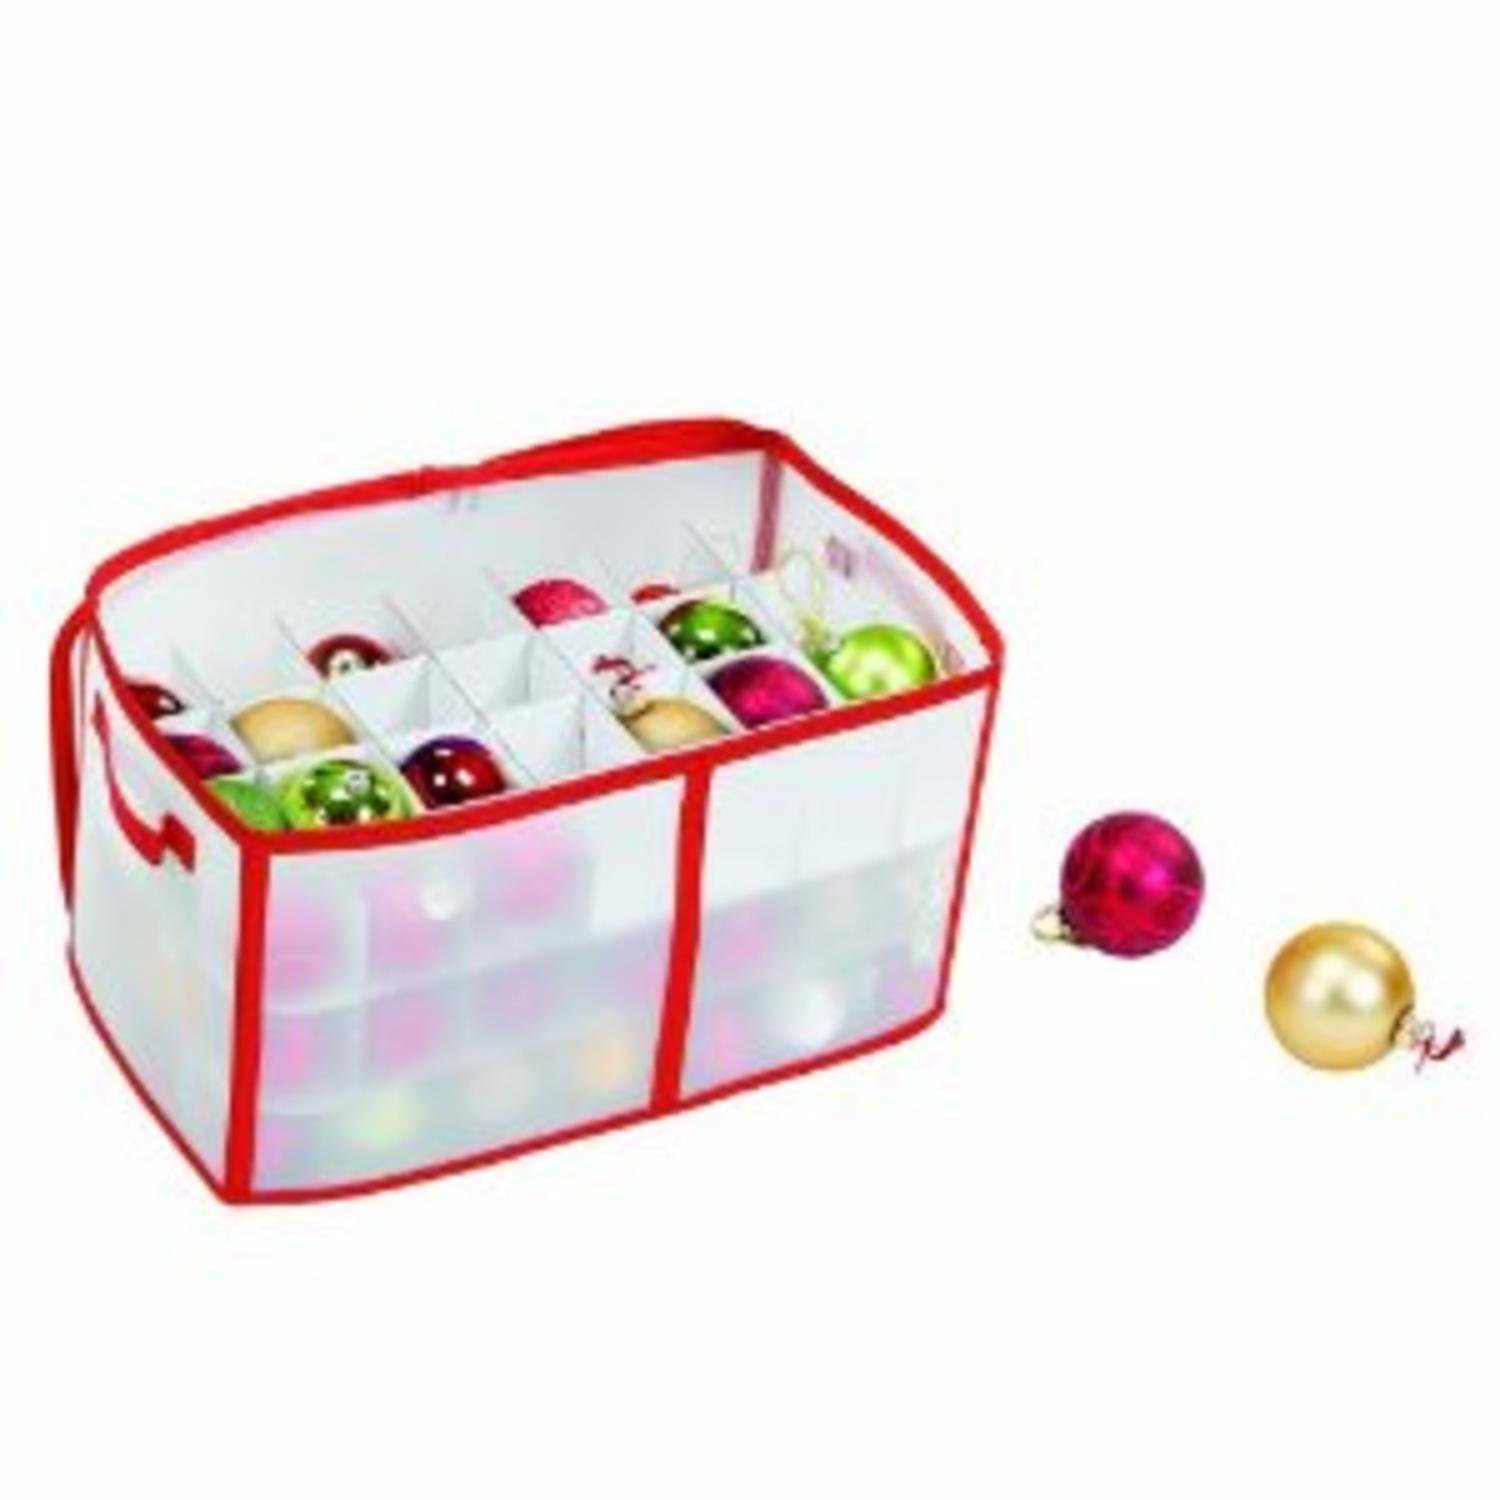 Northlight Zip-Up Christmas Decoration Storage Bag - Holds up to 112 Ornaments